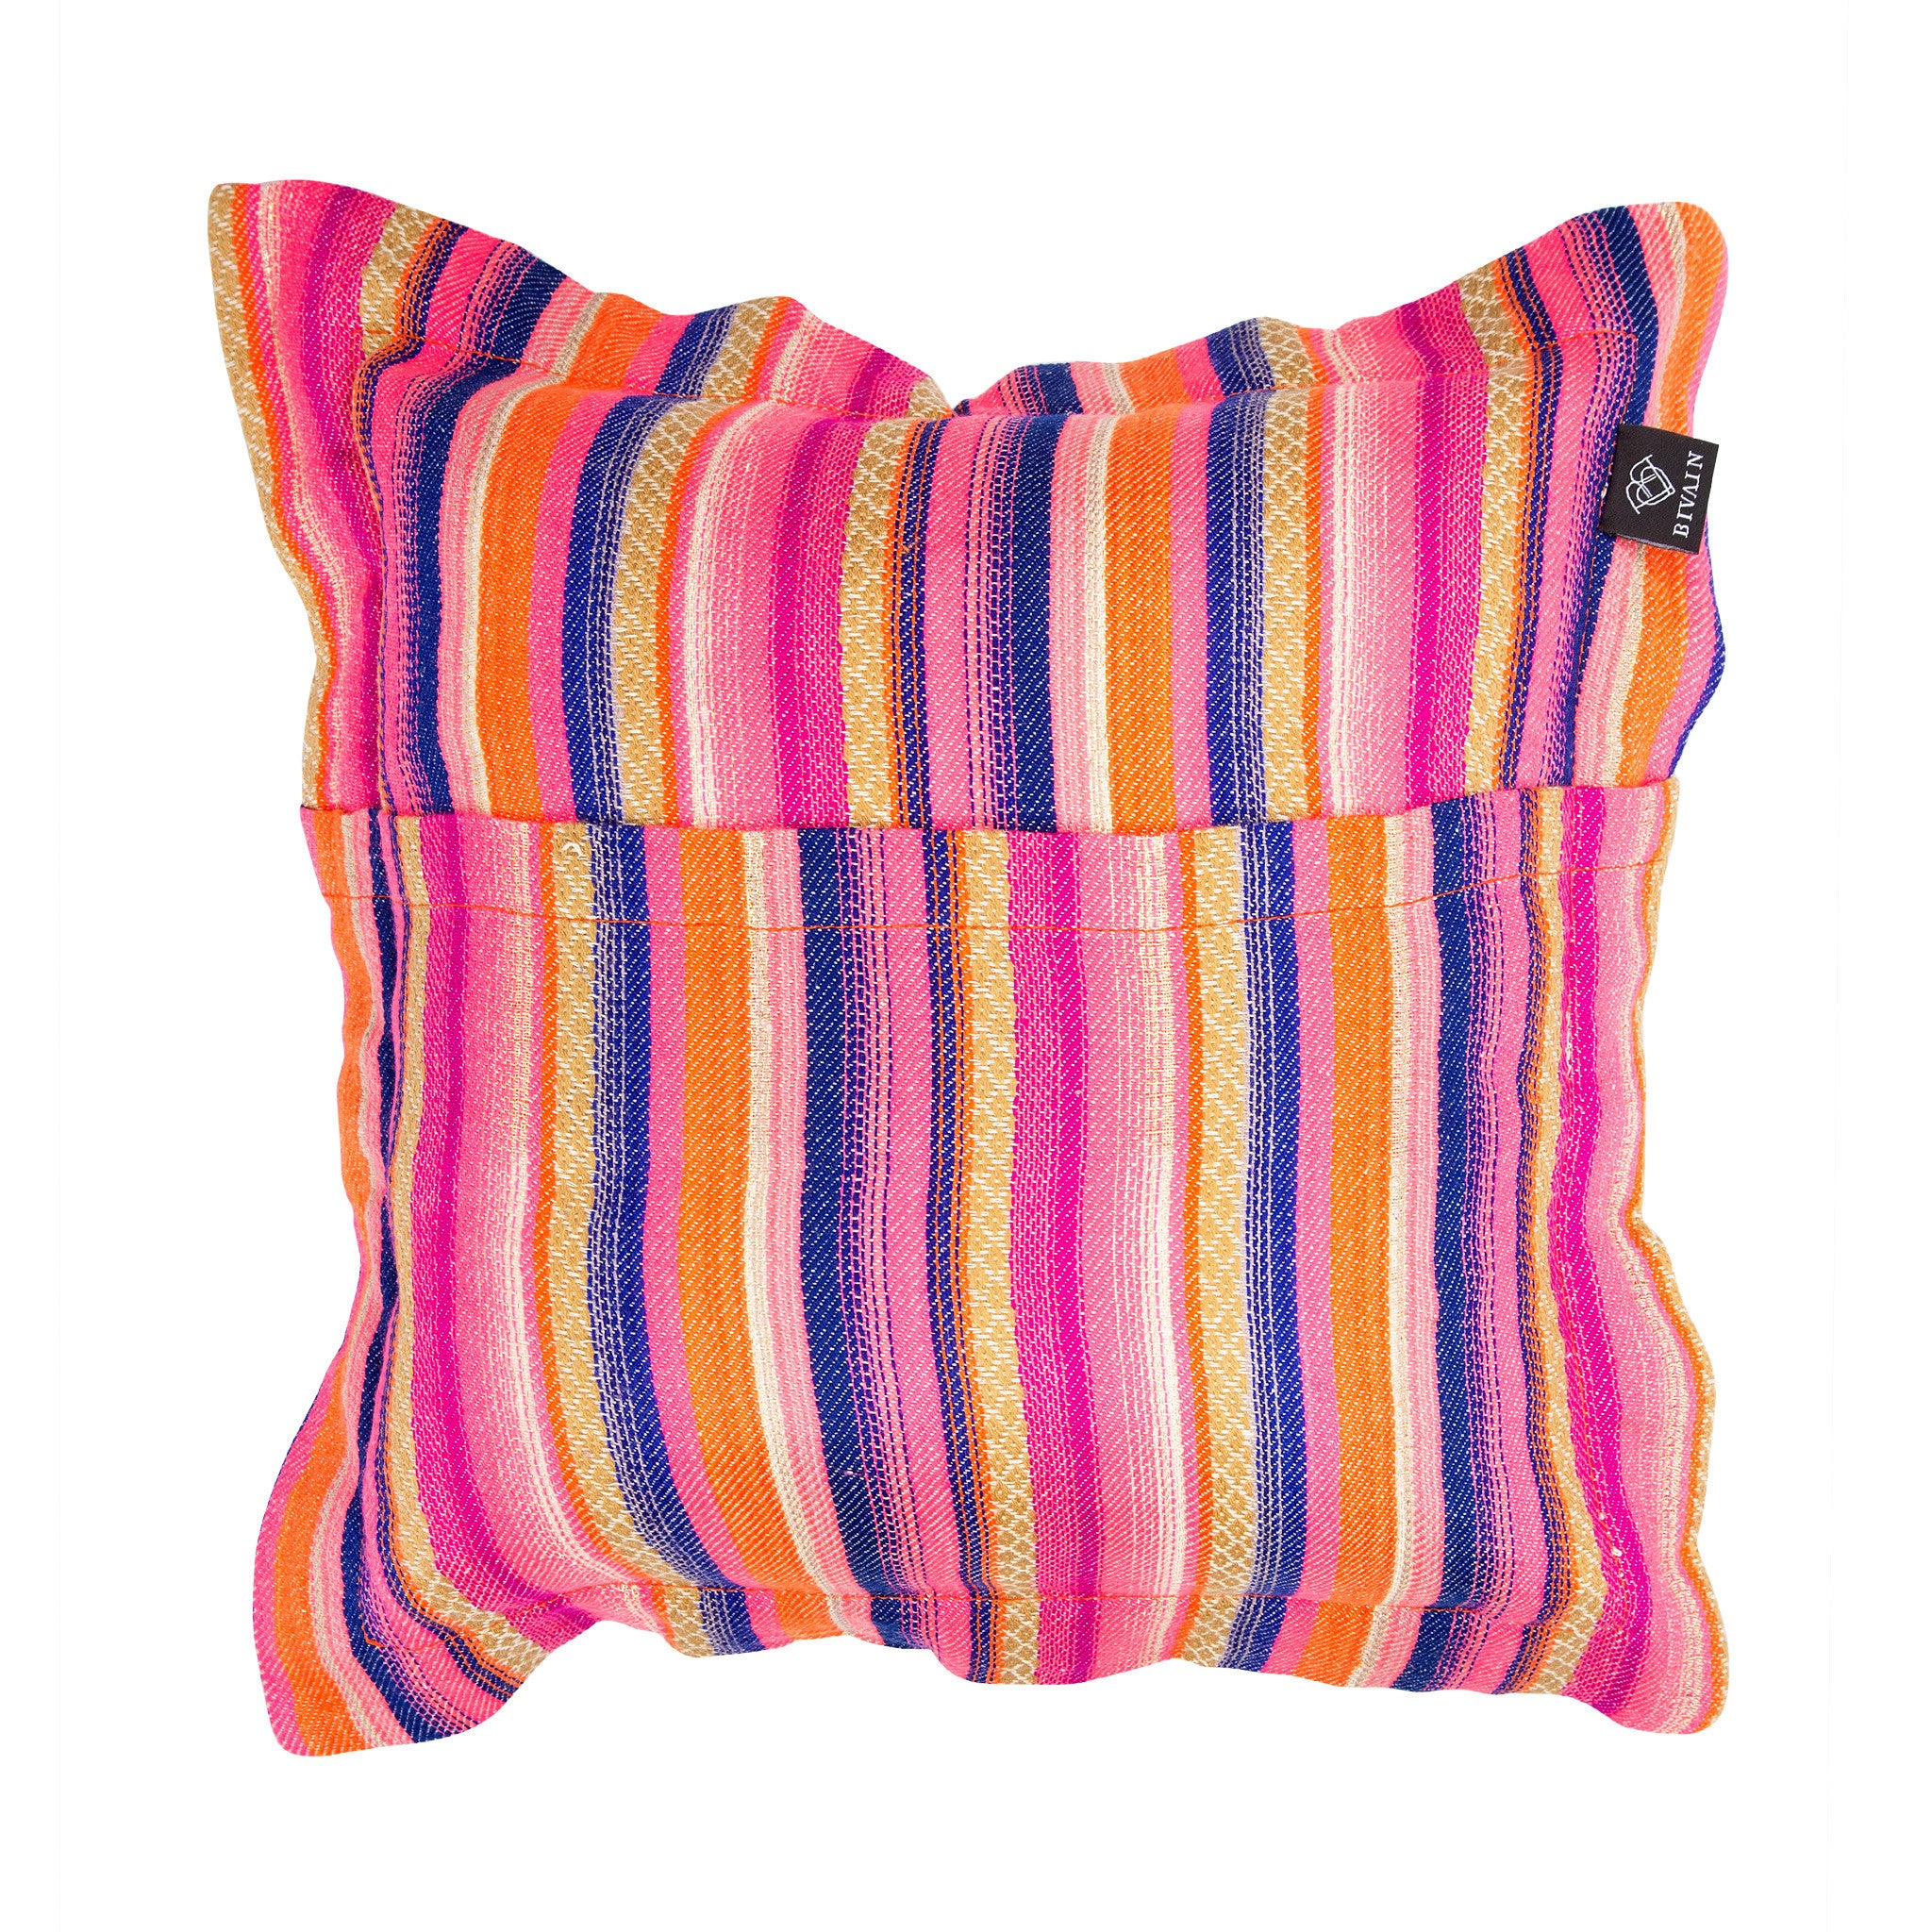 Bedouin-style orange cotton tasselled cushion - Bivain - 3